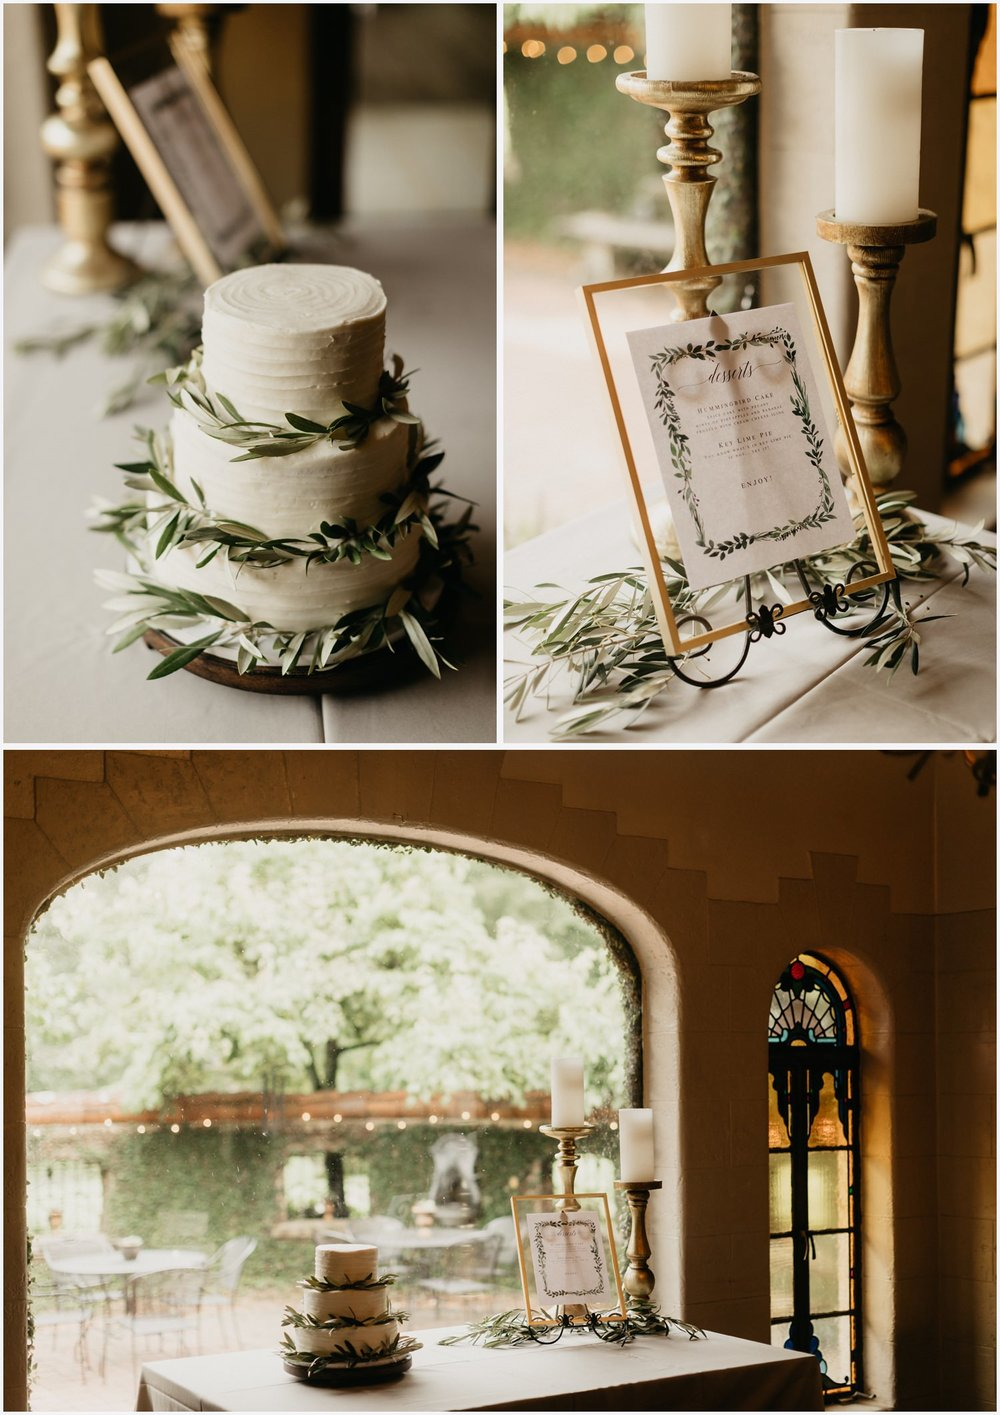 Wedding details at the Gabrella Manor